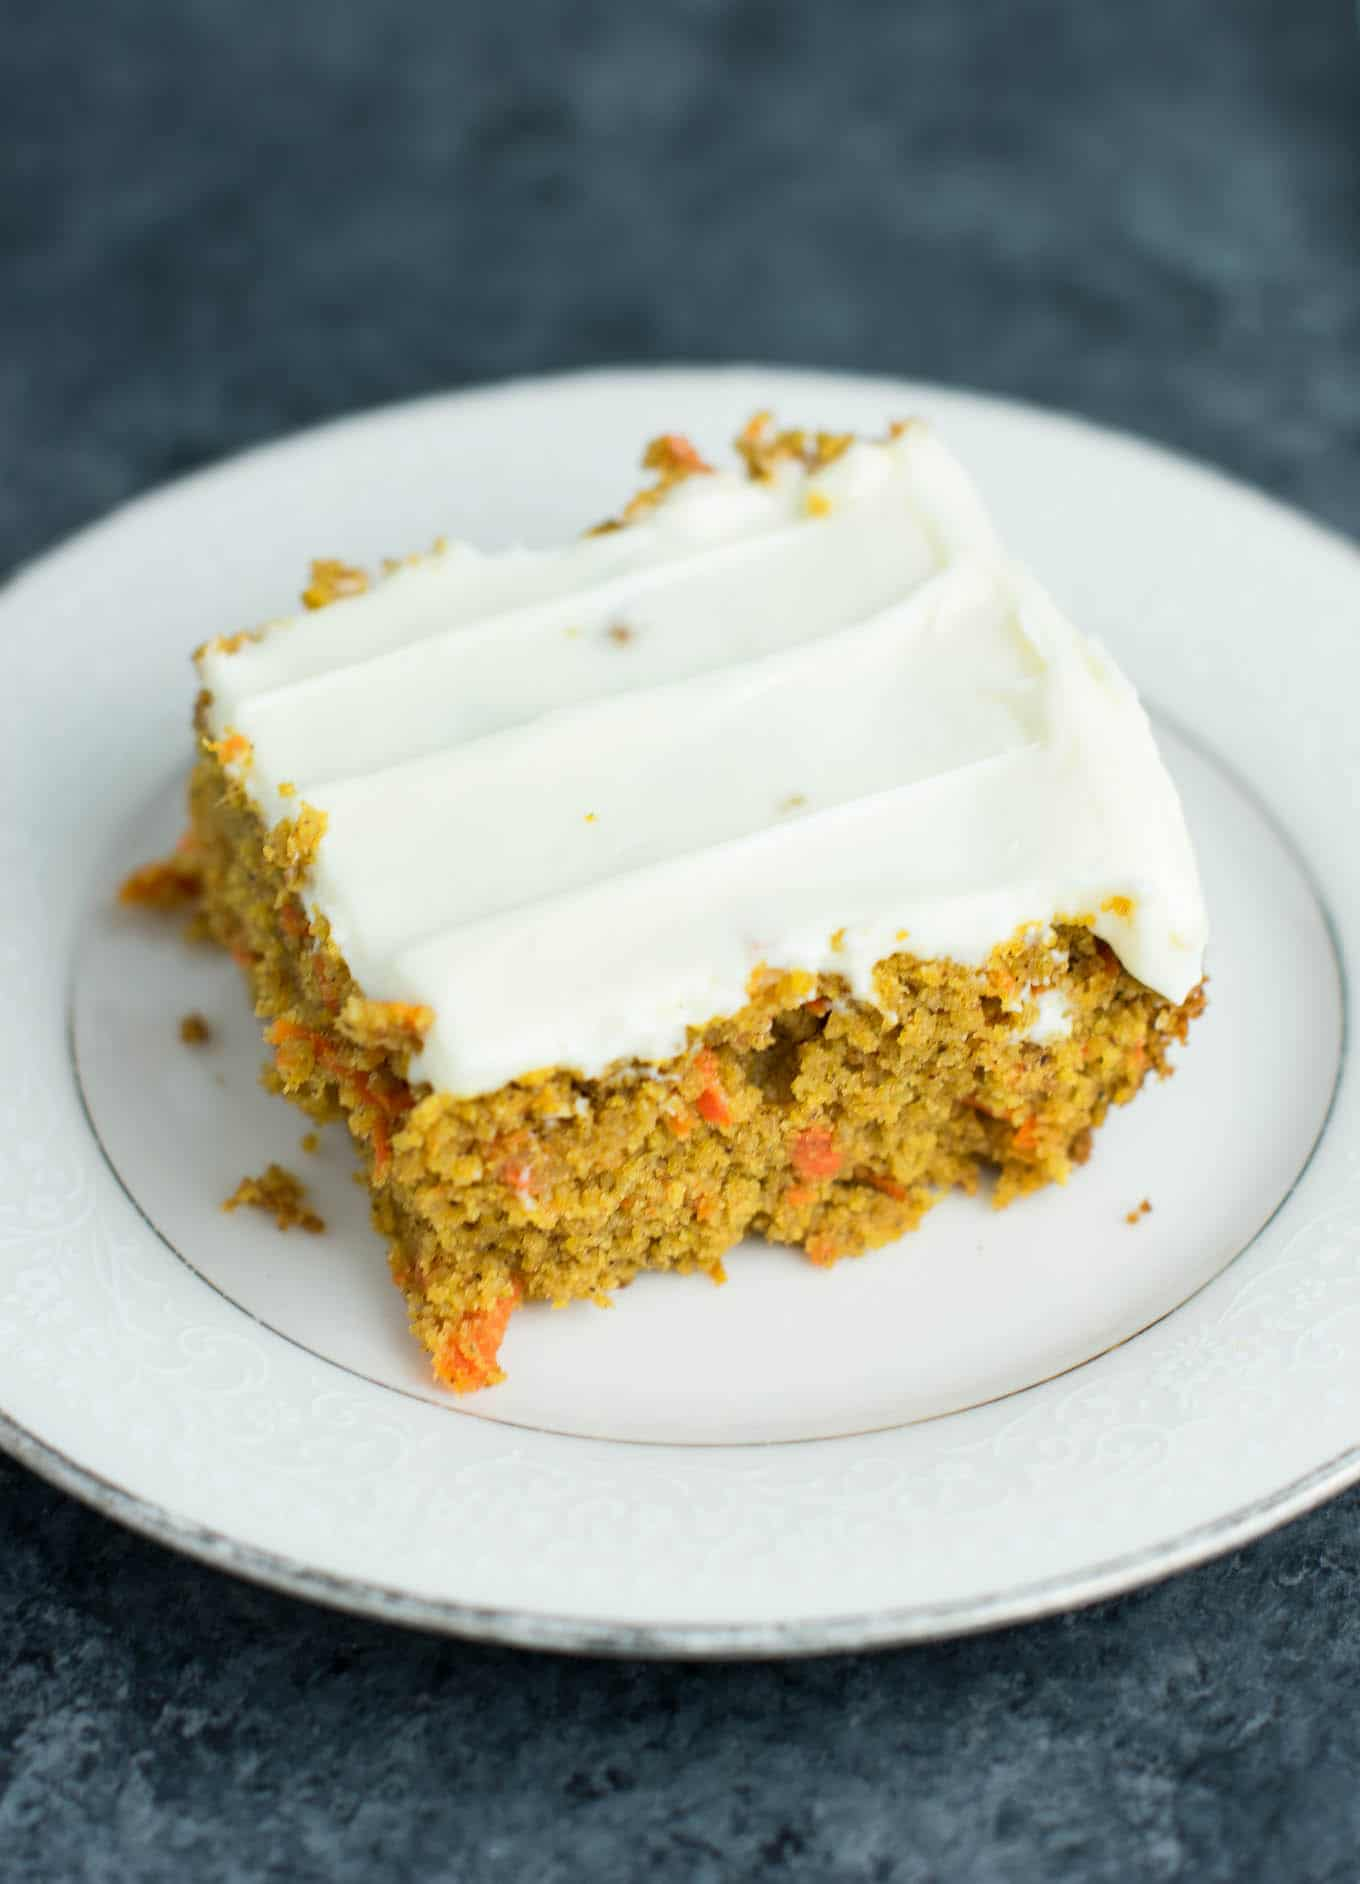 The best gluten free carrot cake recipe with cream cheese frosting. Made with two simple flours and no fancy expensive ingredients. No ambiguous all purpose gf flour needed. The easiest and best carrot cake you will ever make! #glutenfree #carrotcake #glutenfreecarrotcake #dessert #healthy